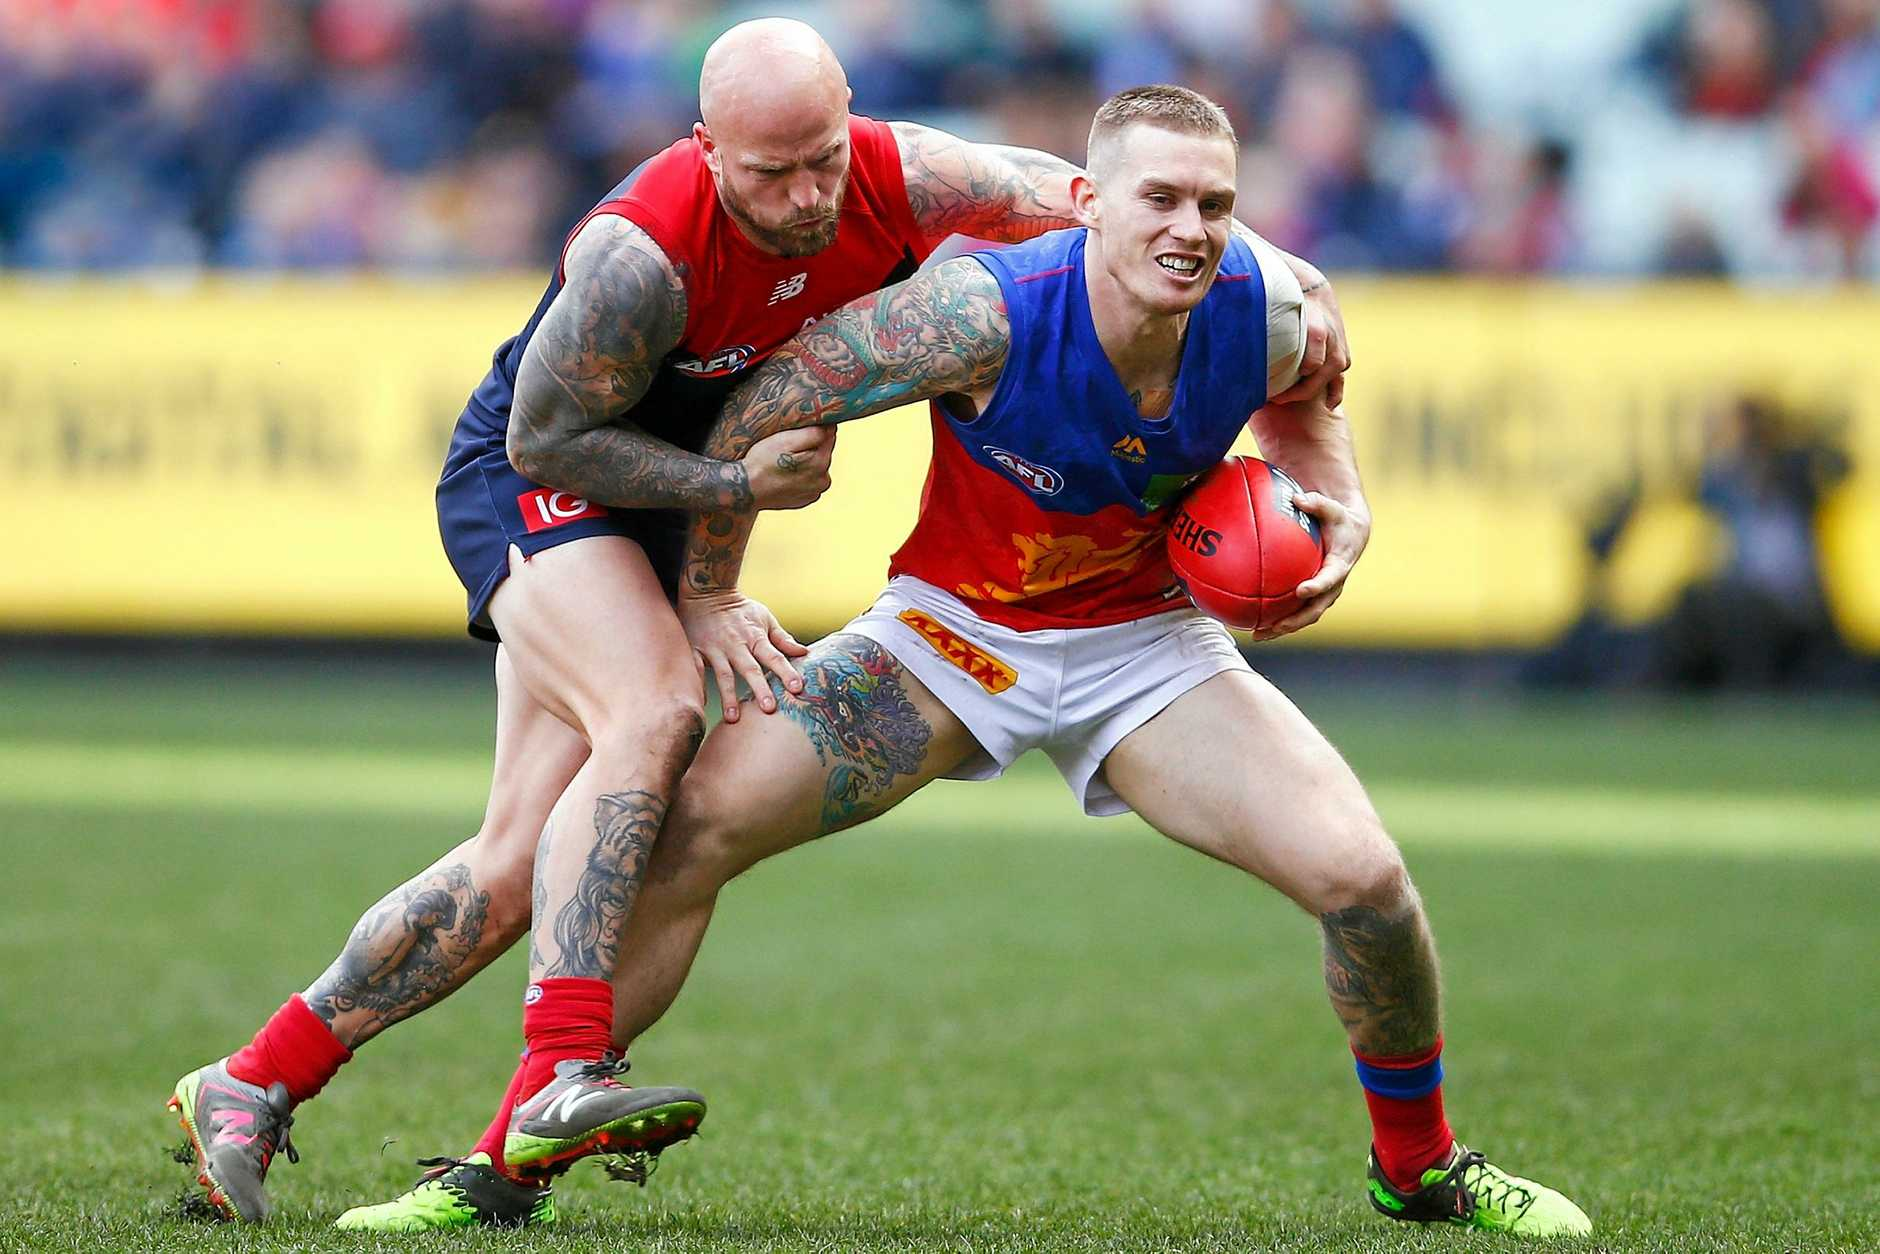 PLAYING FOR PRIDE: Dayne Beams will play a key role for the Lions, who coach Chris Fagan has compared